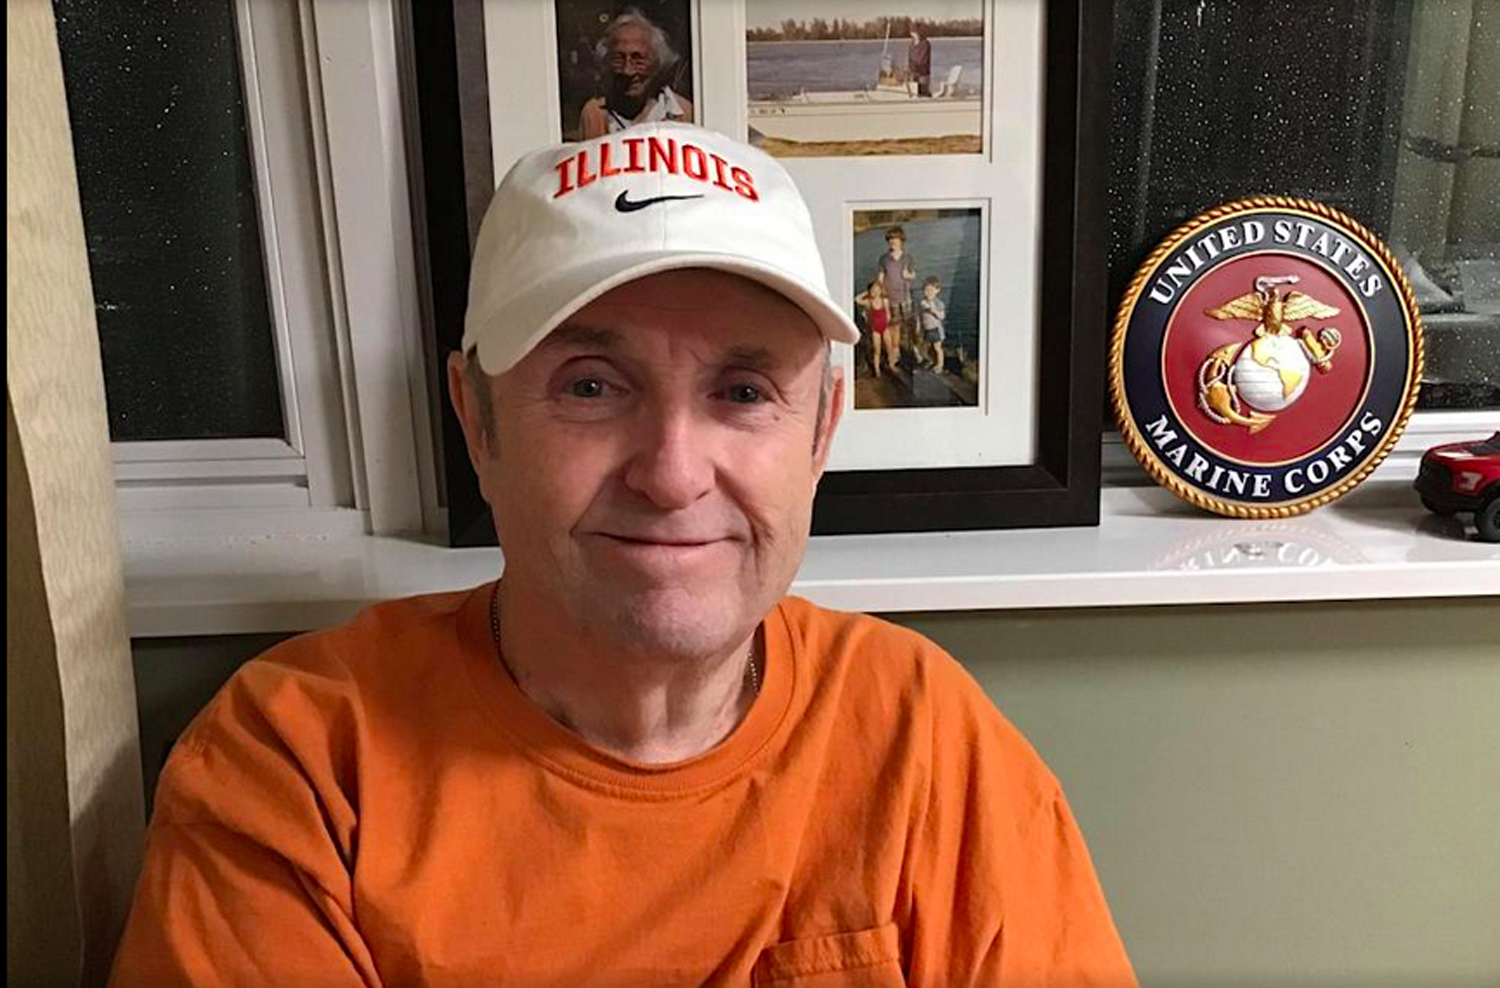 Marine Corps veteran Mike Manning, 73, died of COVID-19 on Nov. 17, 2020, during an outbreak at the federal Department of Veterans Affairs nursing home in Danville that an inspector general's report says didn't followed COVID guidelines and made numerous mistakes in dealing with the outbreak.